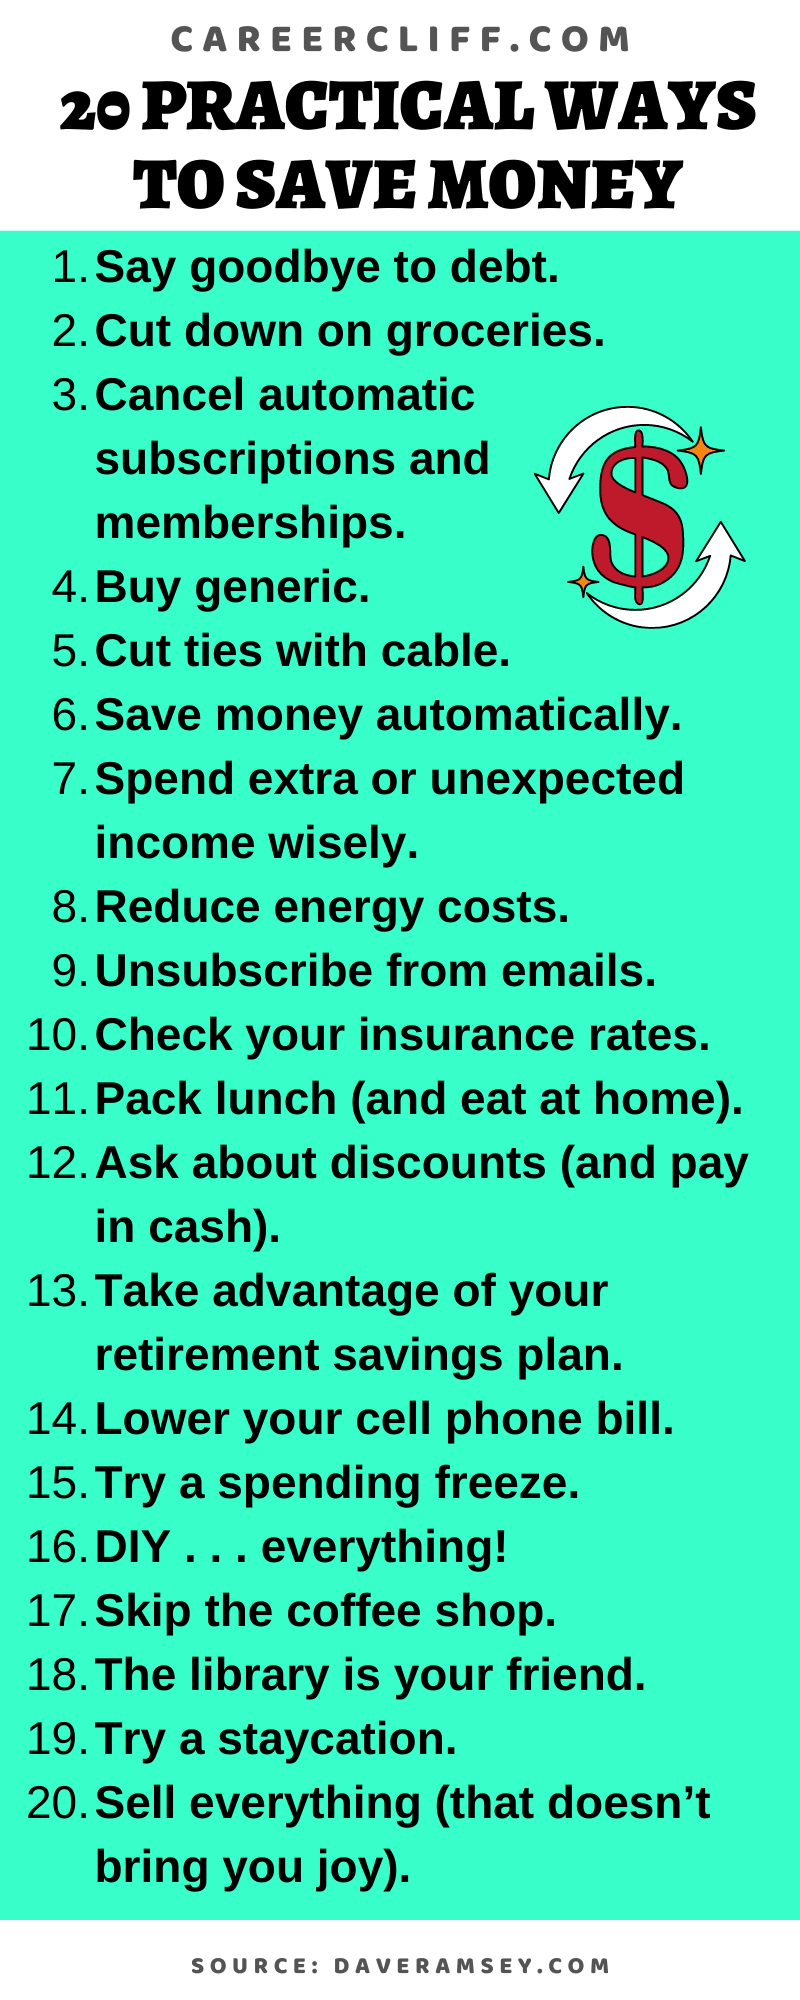 practical ways to save money how to save money tips on how to save money how to save money fast how to save for a house how to save money on groceries how to save money for a house how to save money each month how to start saving money how to save more money how much emergency fund how to save up for a house how to budget and save money how to save money in college how much to save for house ideas on how to save money ways on how to save money tips on how to save how is the best way to save money how to save money from salary how to save money as a student how can i save money how to save up money how to save money at home how to save money on food how to spend less money how to save money for kids how to be frugal how to start saving for a house how much to save how to save money in 2020 how to save money to buy a house how to save money every day how to save on groceries how to save your money how to save 5000 in a year how to save to buy a house how to save money every month how to save money monthly how much of paycheck to save how do i save money how to save money effectively how to grocery shop on a budget how to save money quickly how to save 5000 in 6 months how to budget money on low income how to save money for future how to save money fast on a low income how to save 5000 in 3 months how to save money wikihow how do you save money how much to save each month how to save 1000 a month how much to save for a baby how to start saving how to save a lot of money how to save money as a college student how much do you save a month how much to save monthly how much money to save how to save up money fast how much to have in emergency fund how to save money fast for a house how to save money reddit how to save 10000 in 6 months how to save money on utilities how to save up how to save money on everything how much to save for emergency fund how to save for a house in a year how to save money on wedding how to save 10k in 6 months how much can i save in a year how to